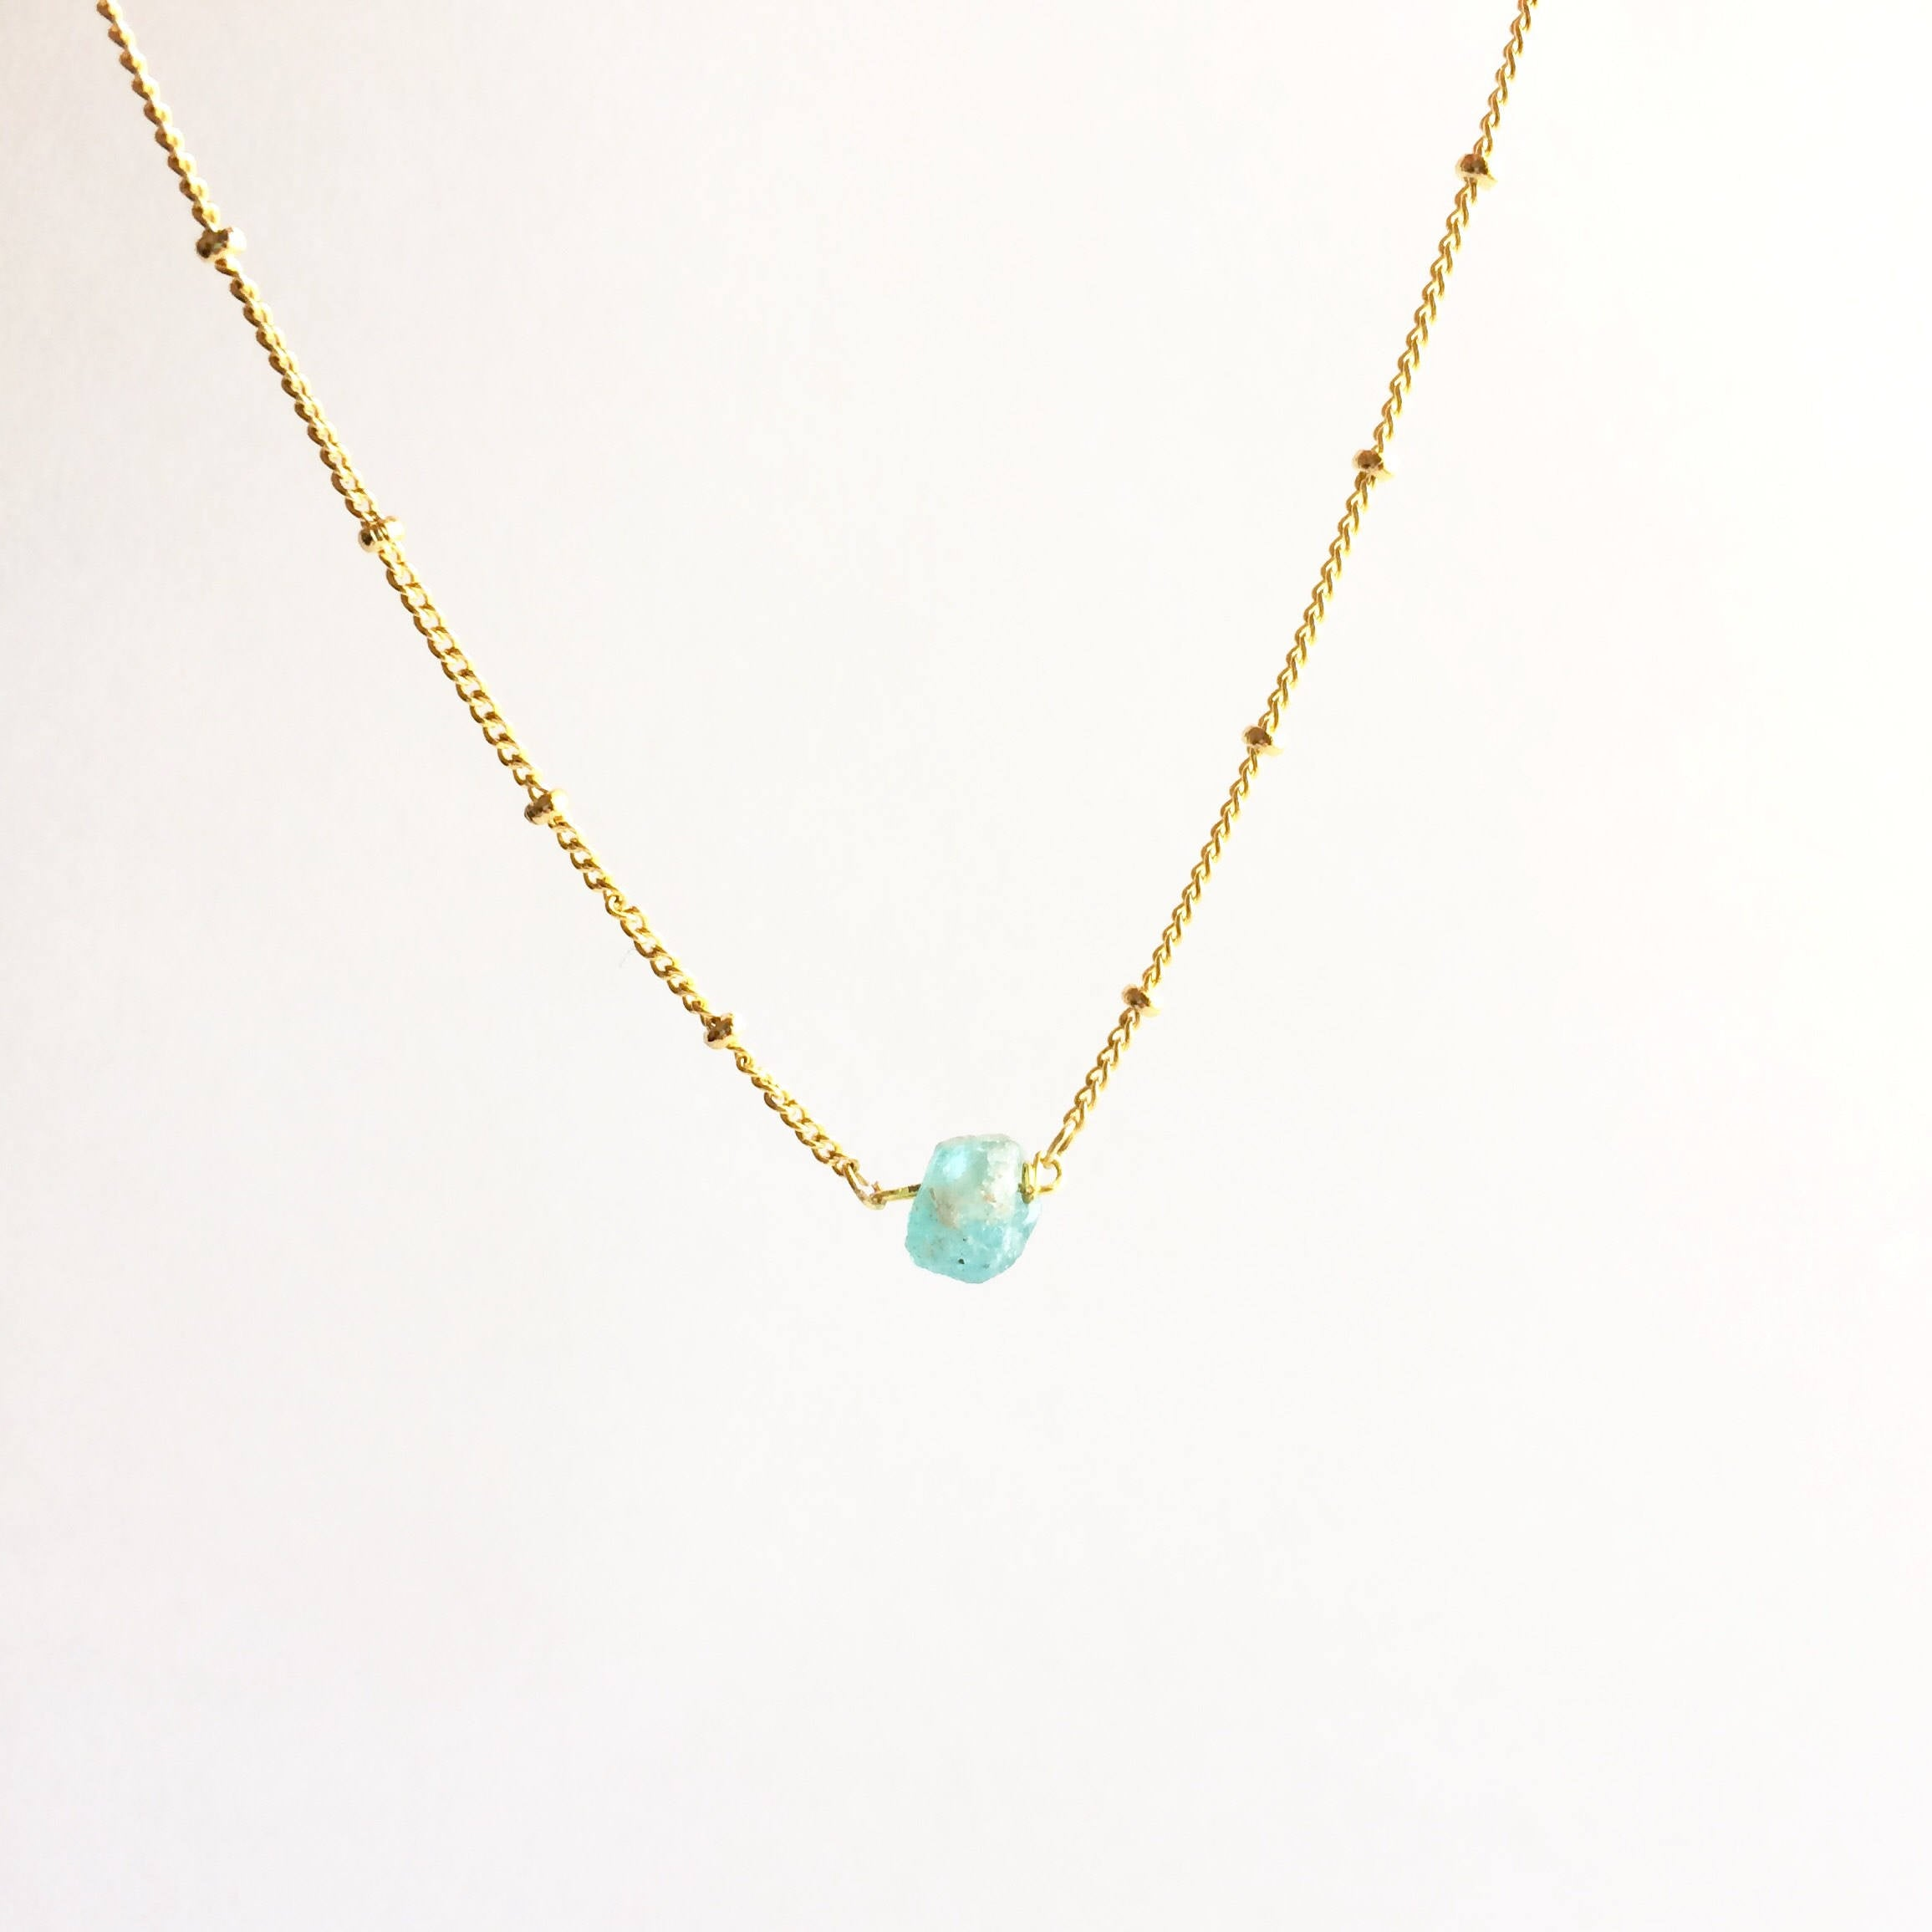 Raw Apatite Rough Gemstone Satellite Chain Necklace | IB Jewelry